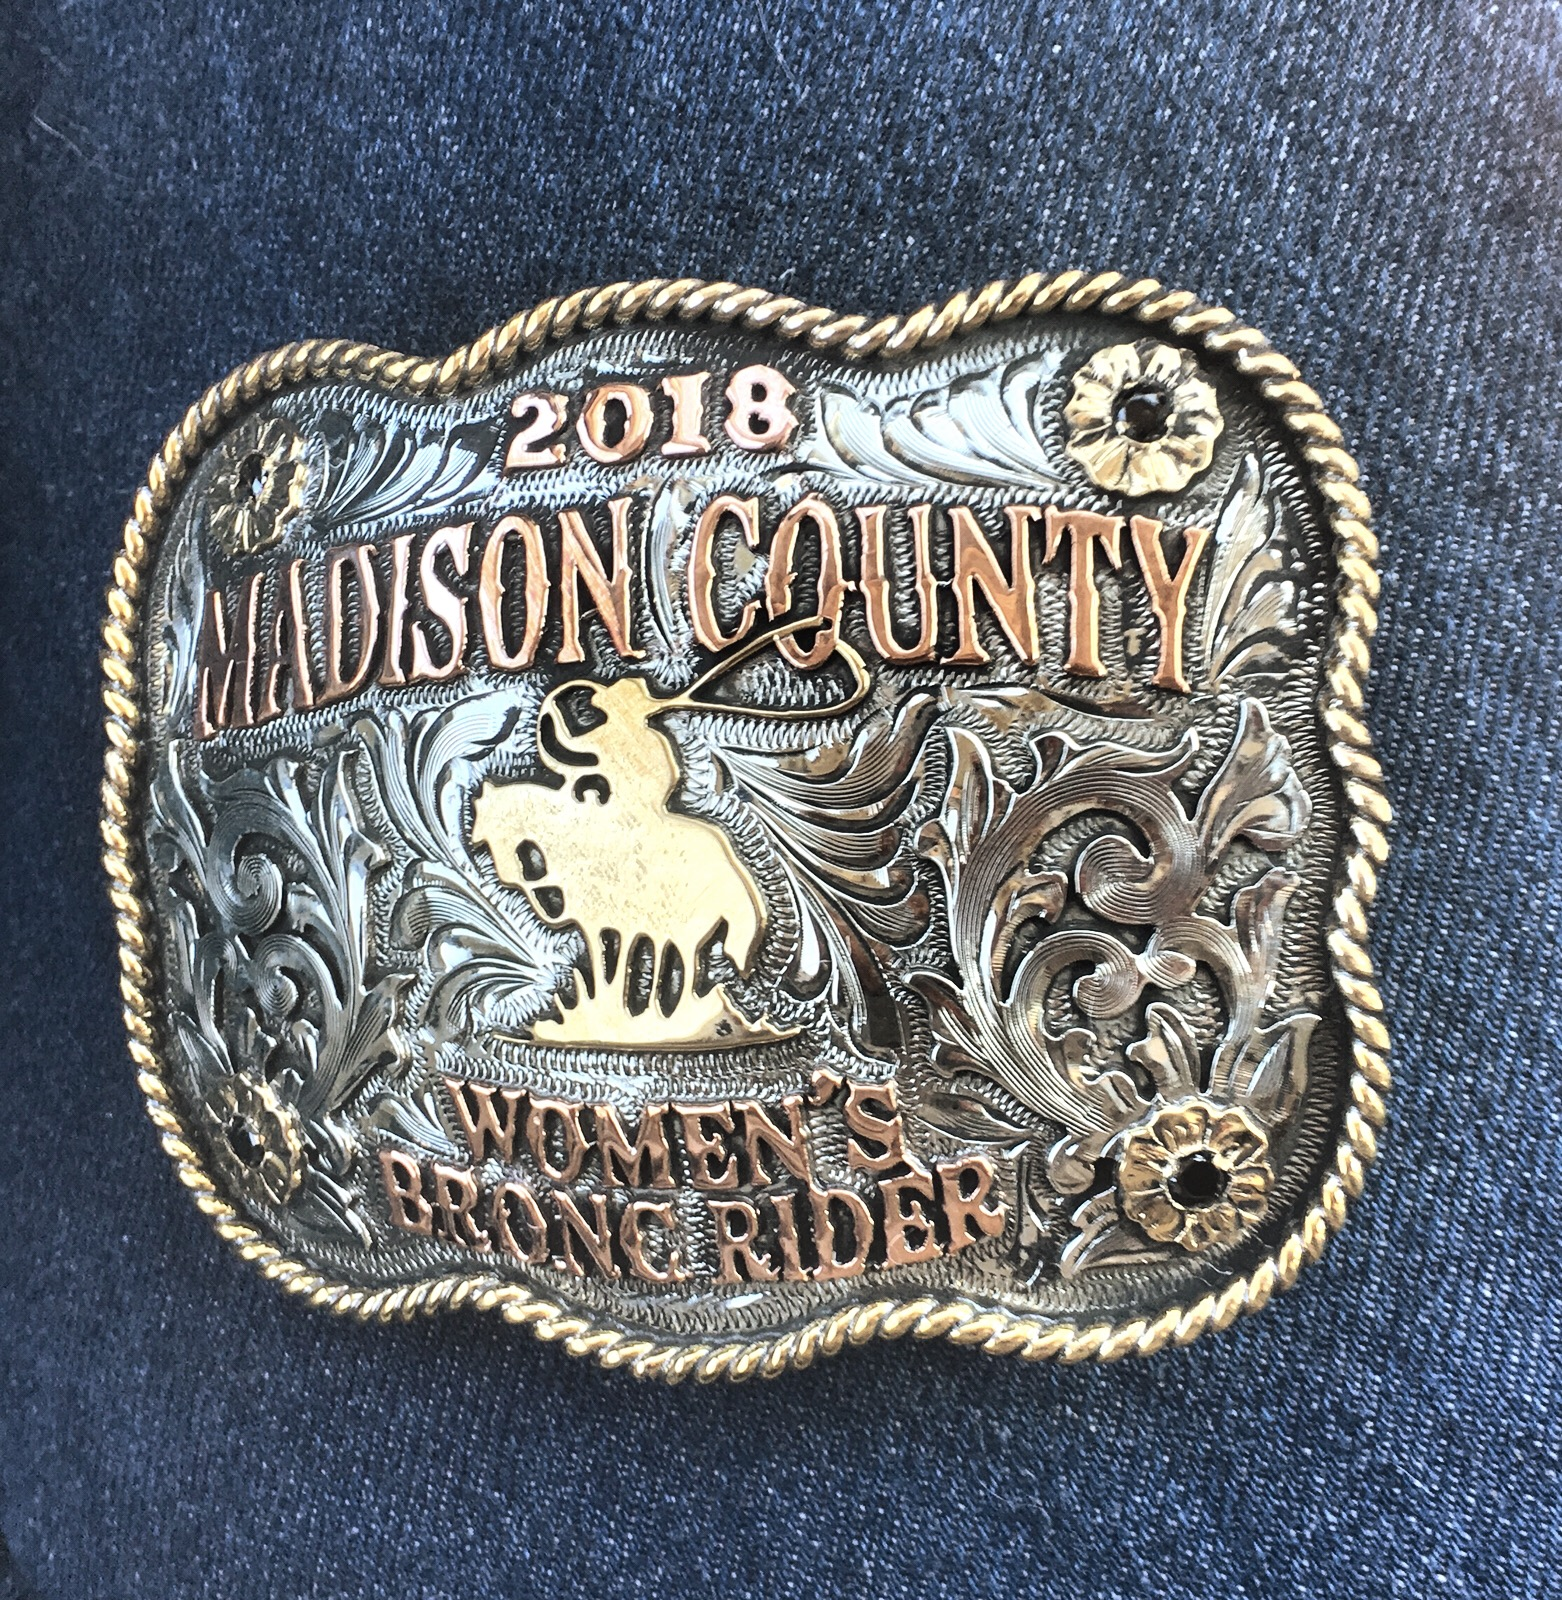 Brittany Miller has won the Madison County Women's Bronc Rider title three consecutive years!